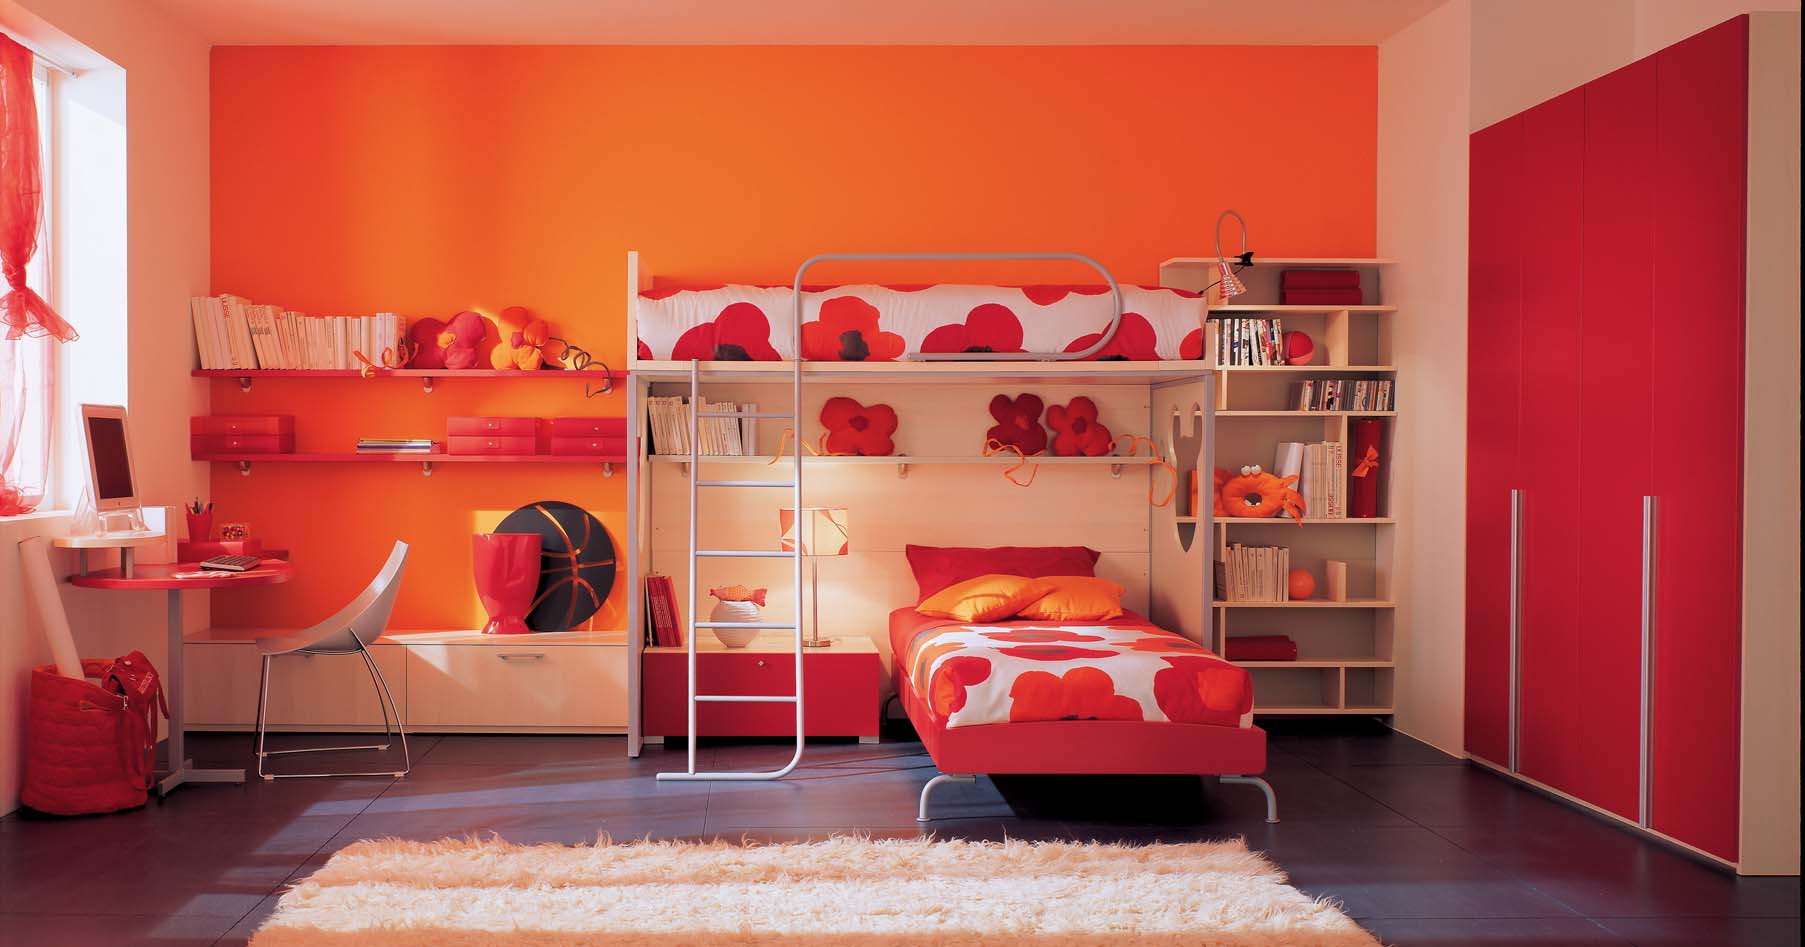 Orange n red kids bedroom with bunk beds for Bunk bed bedroom designs